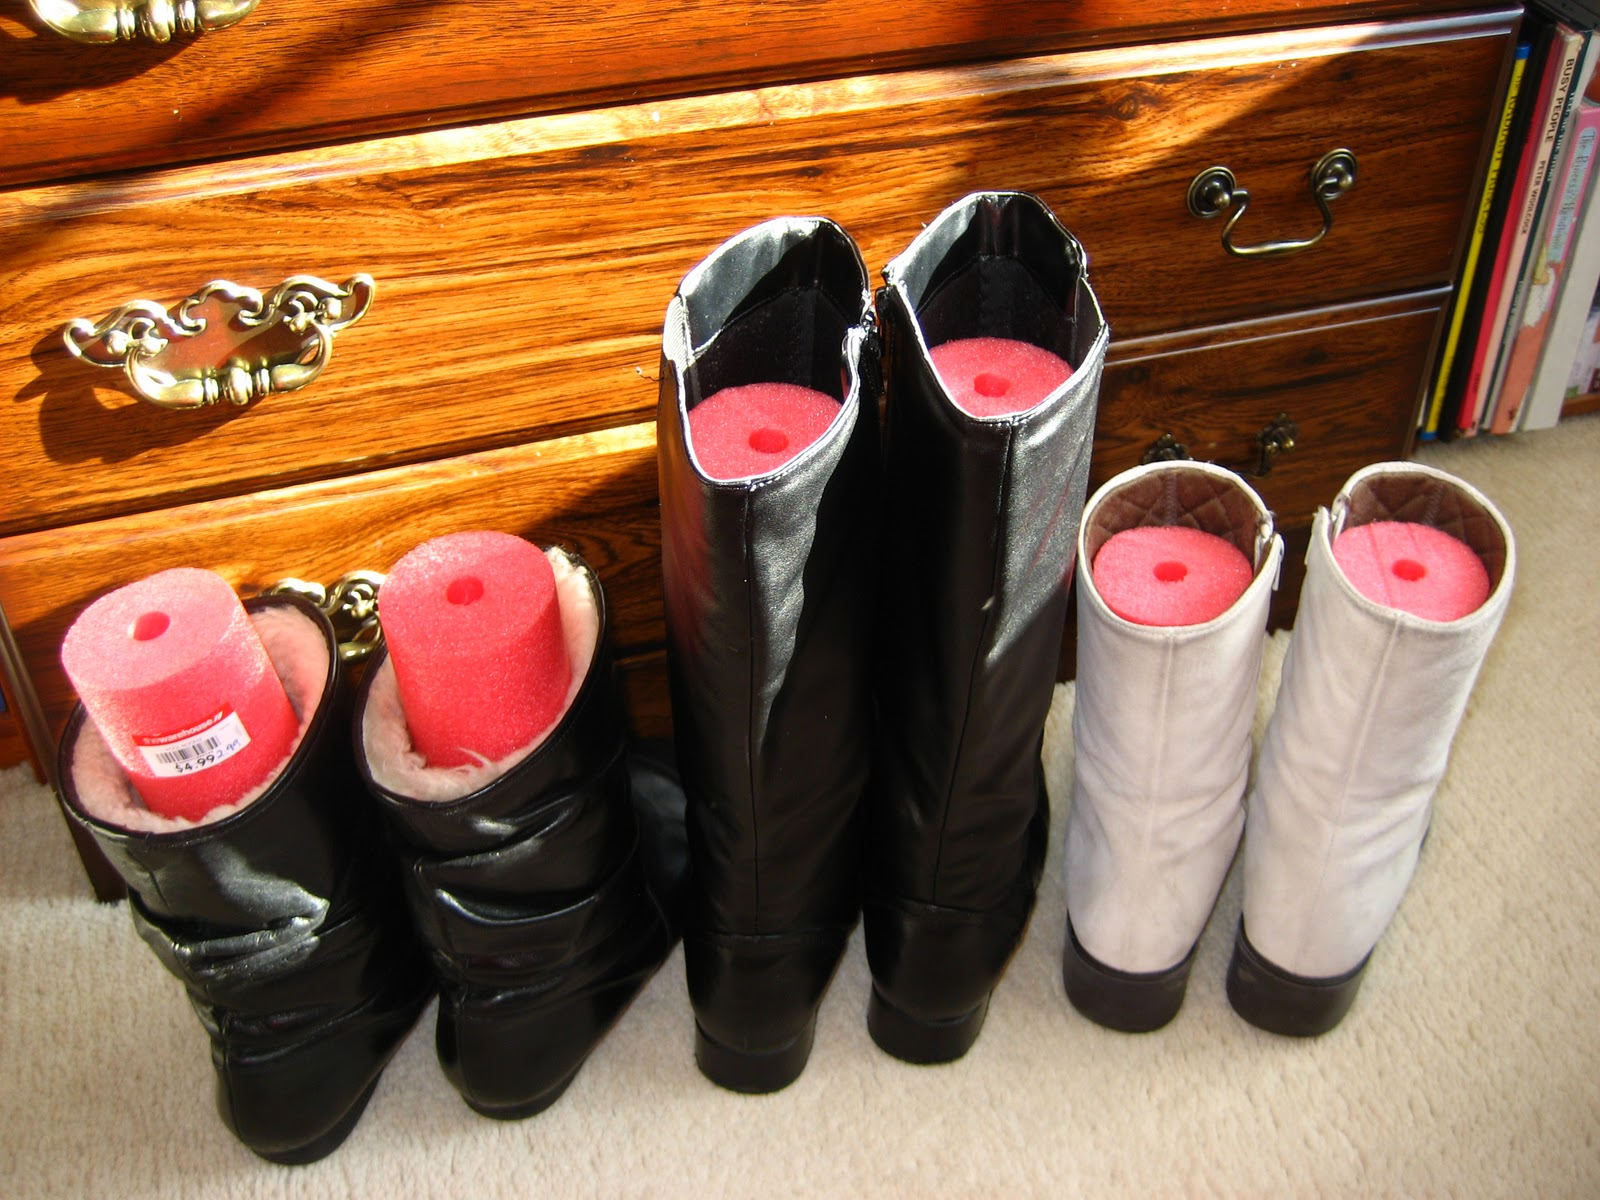 Foam Pool Noodles to Save Your Boots on the Cheap